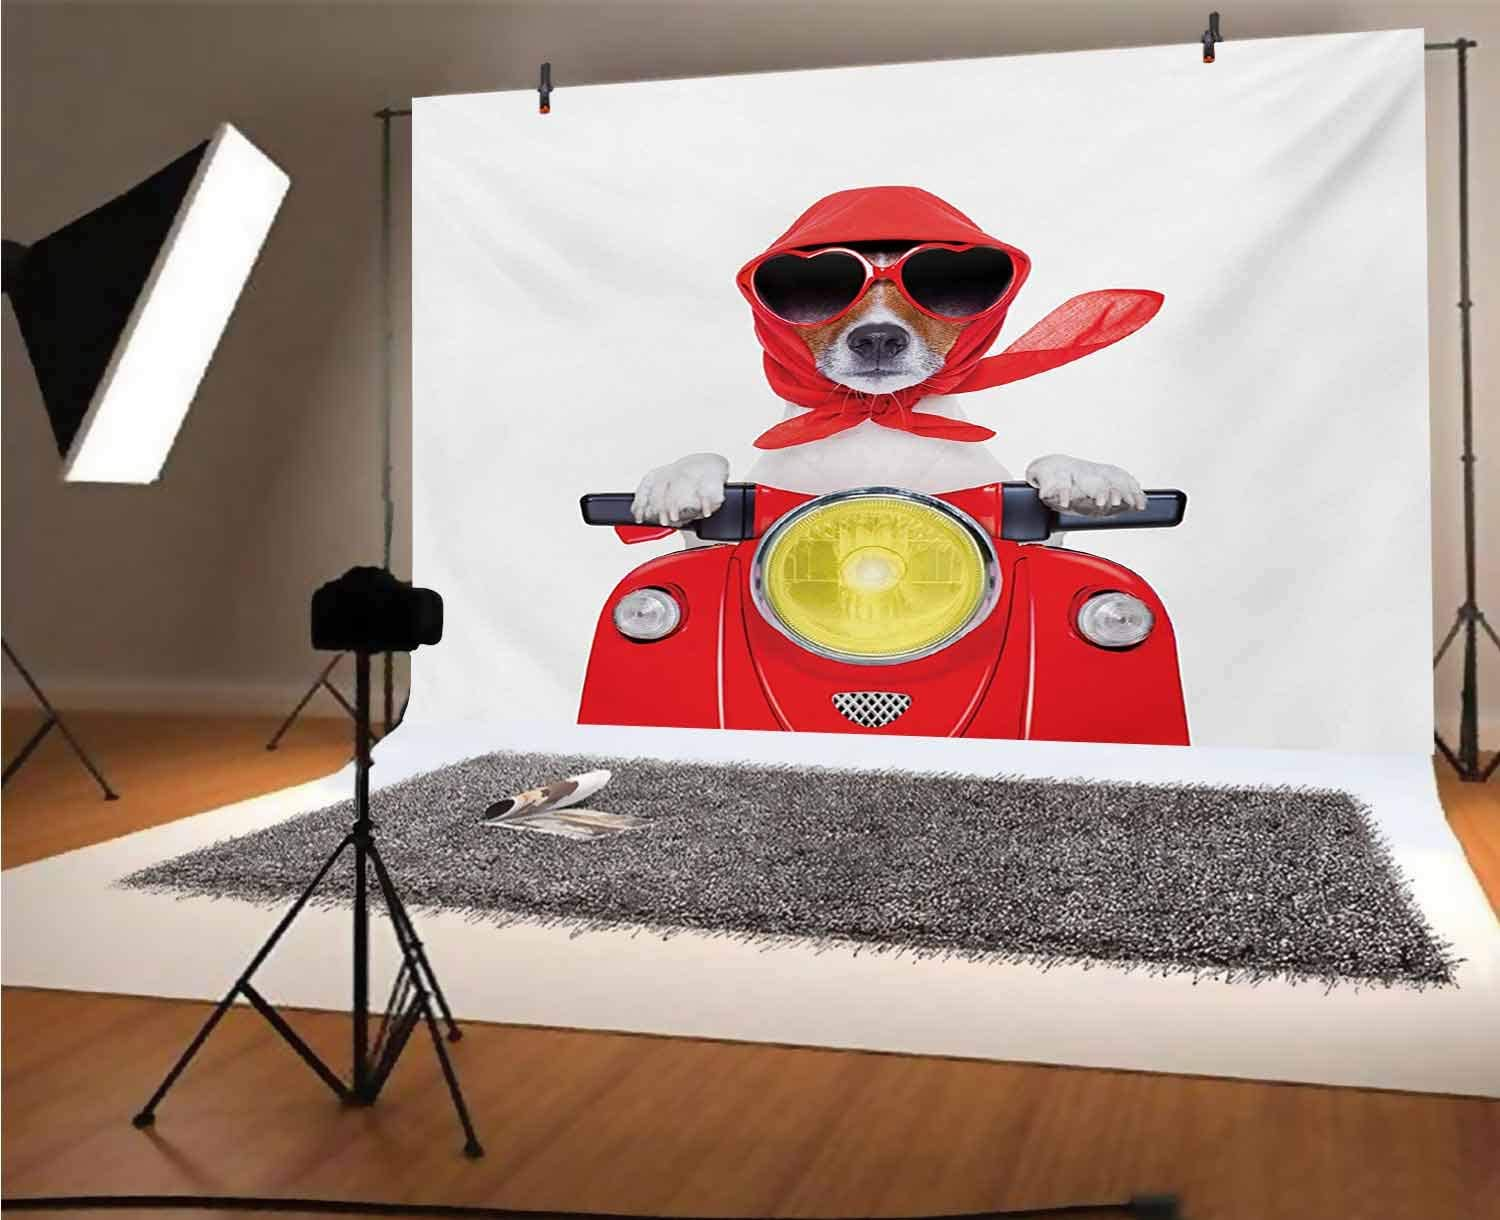 Dog Driver 20x10 FT Vinyl Photography Background Backdrops,Stylish Canine with Scarf Sunglasses Fashion Model Riding Scooter Funny Animal Background for Graduation Prom Dance Decor Photo Booth Studio